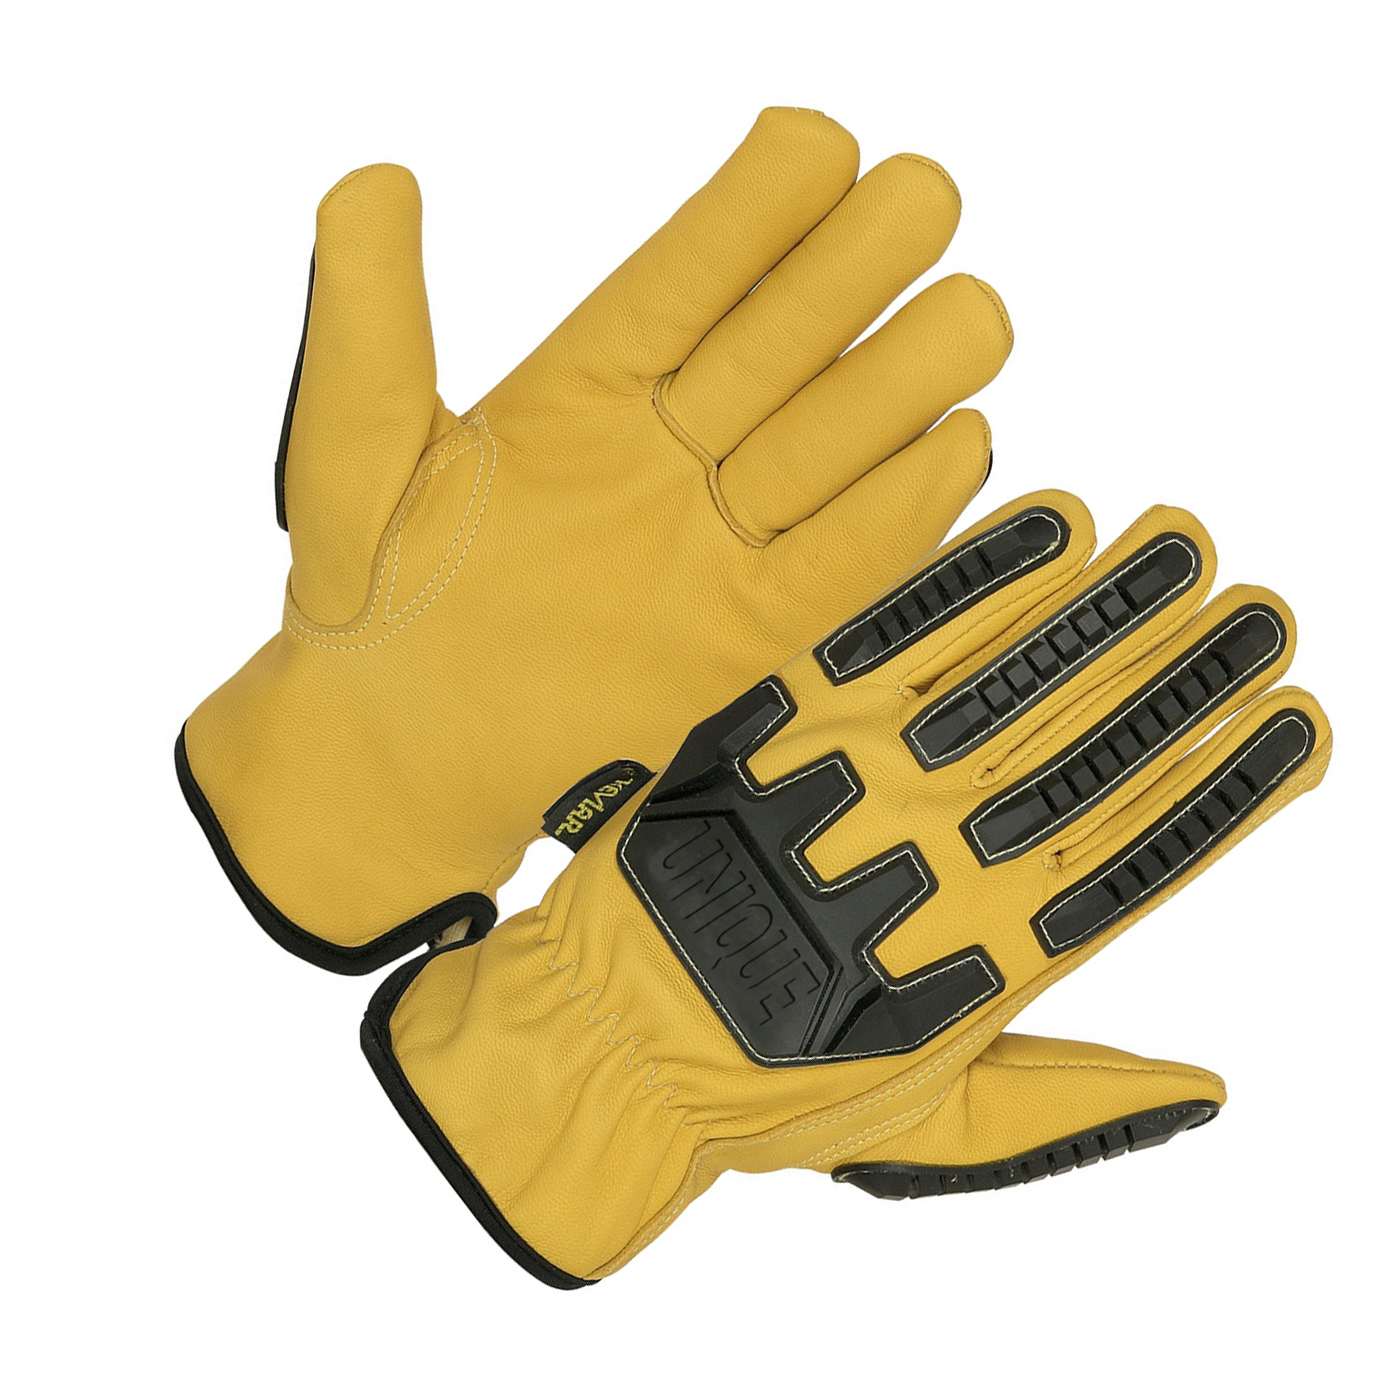 High quality Yellow dyed water proof Goat leather driver. TPR